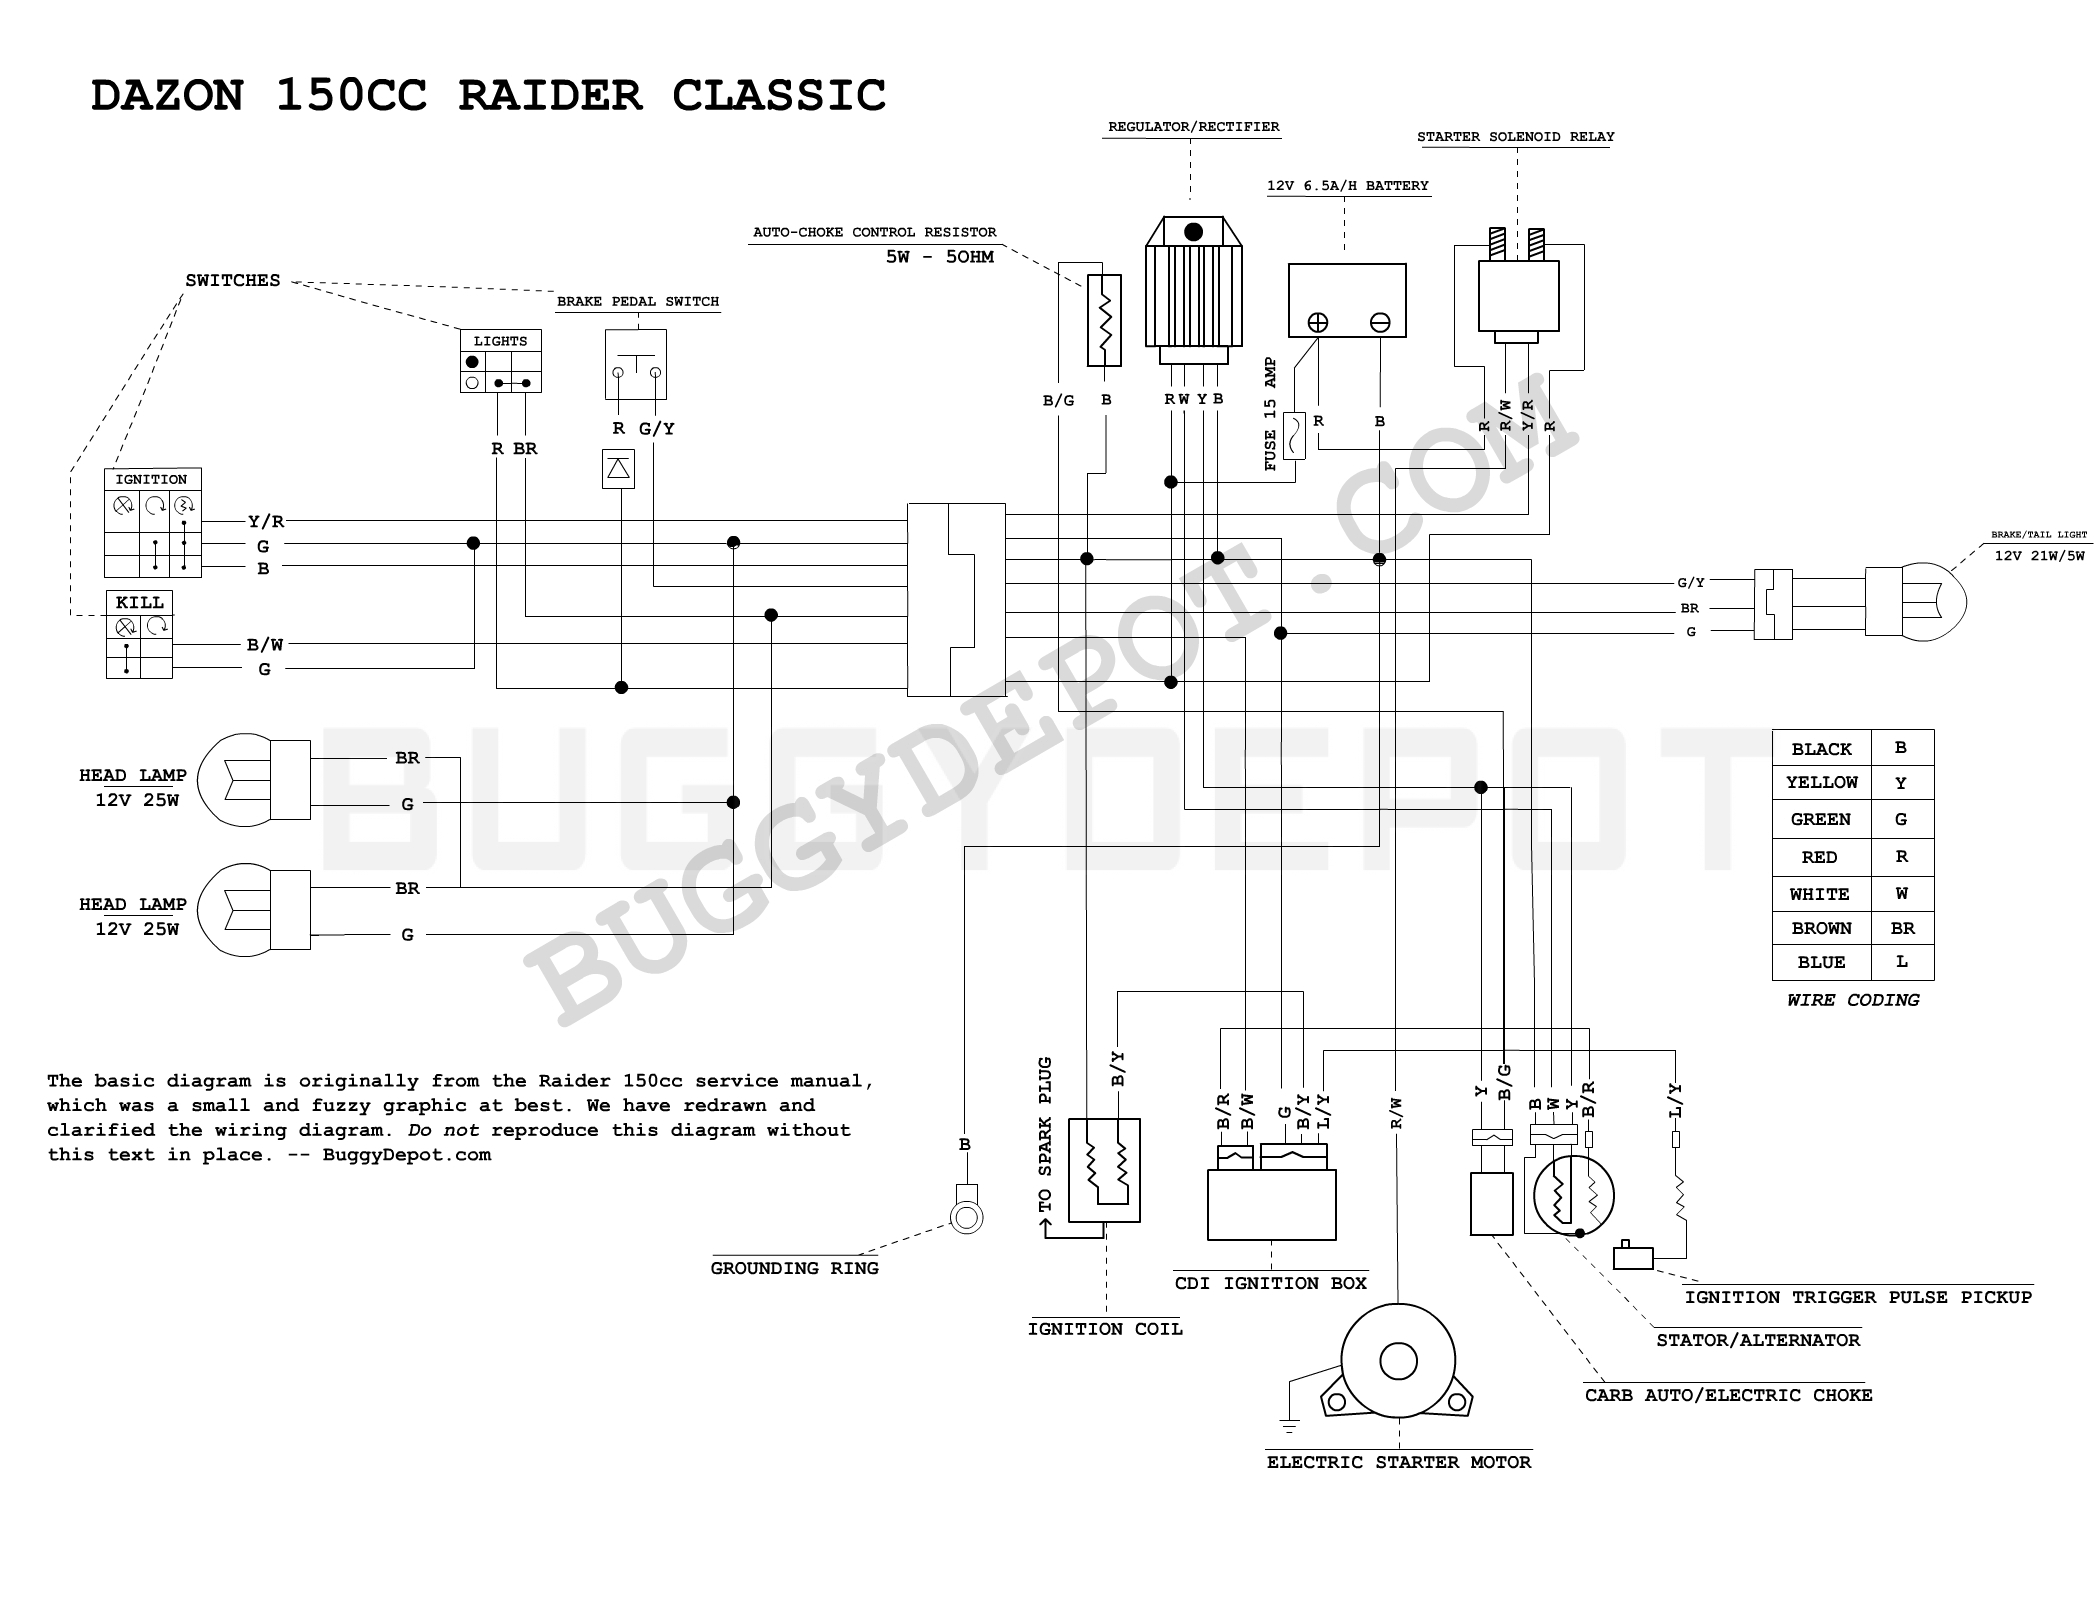 150cc quad bike wiring diagram pollak 12 705 dazon raider classic buggy depot